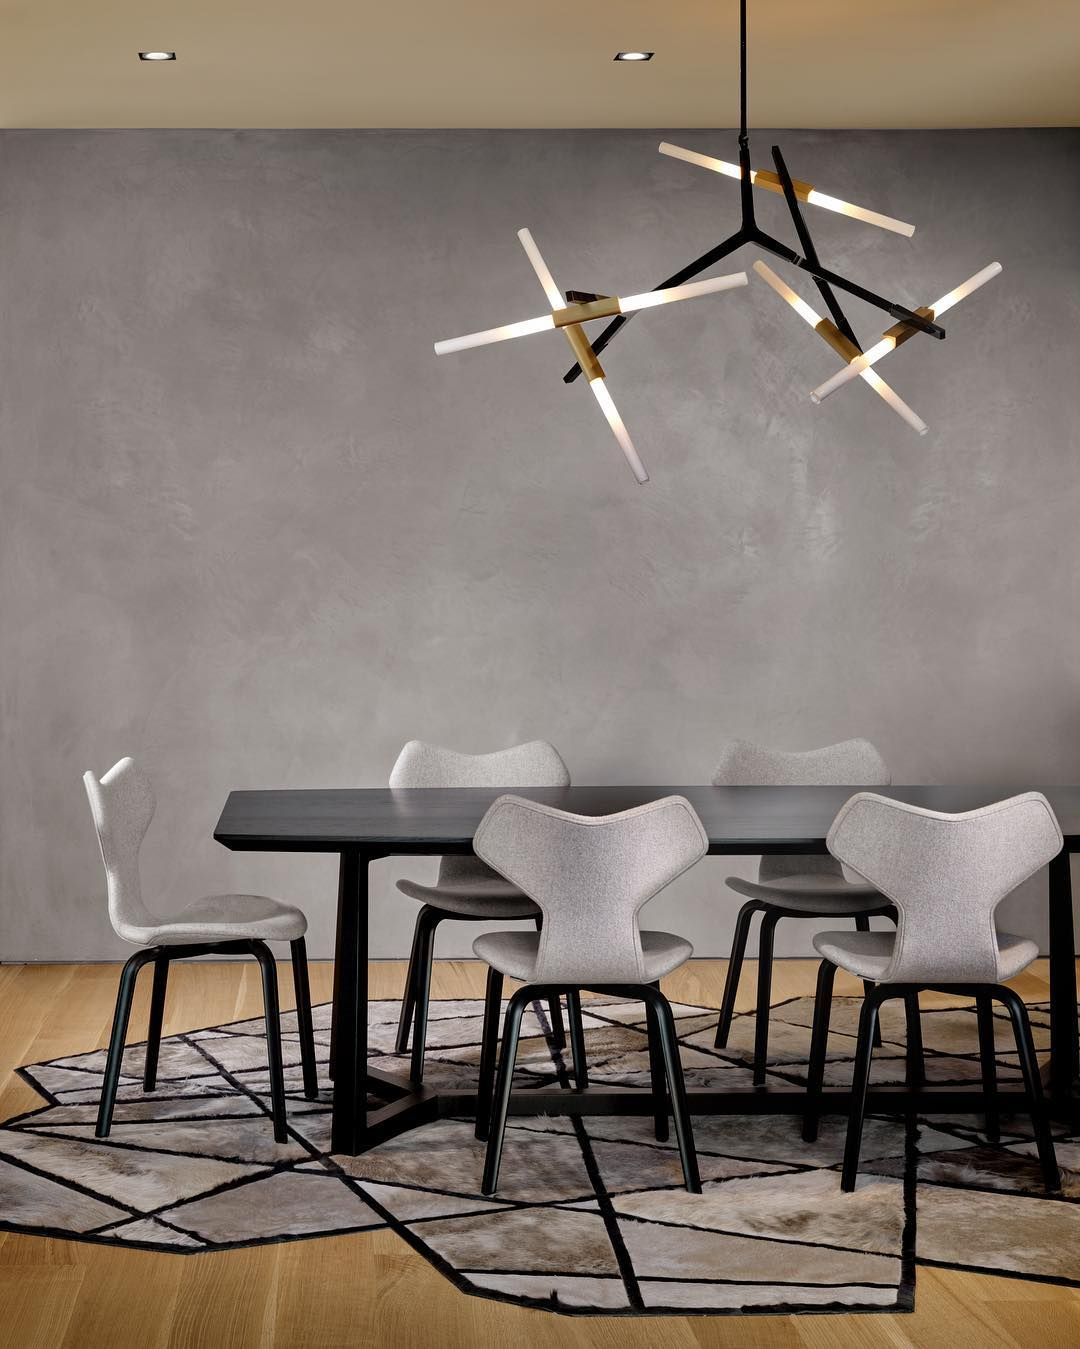 Replica agnes chandelier 10 bulbs with hammer chair by arne zora lighting is premium lighting store specialise in lindsey adelman replica arubaitofo Choice Image